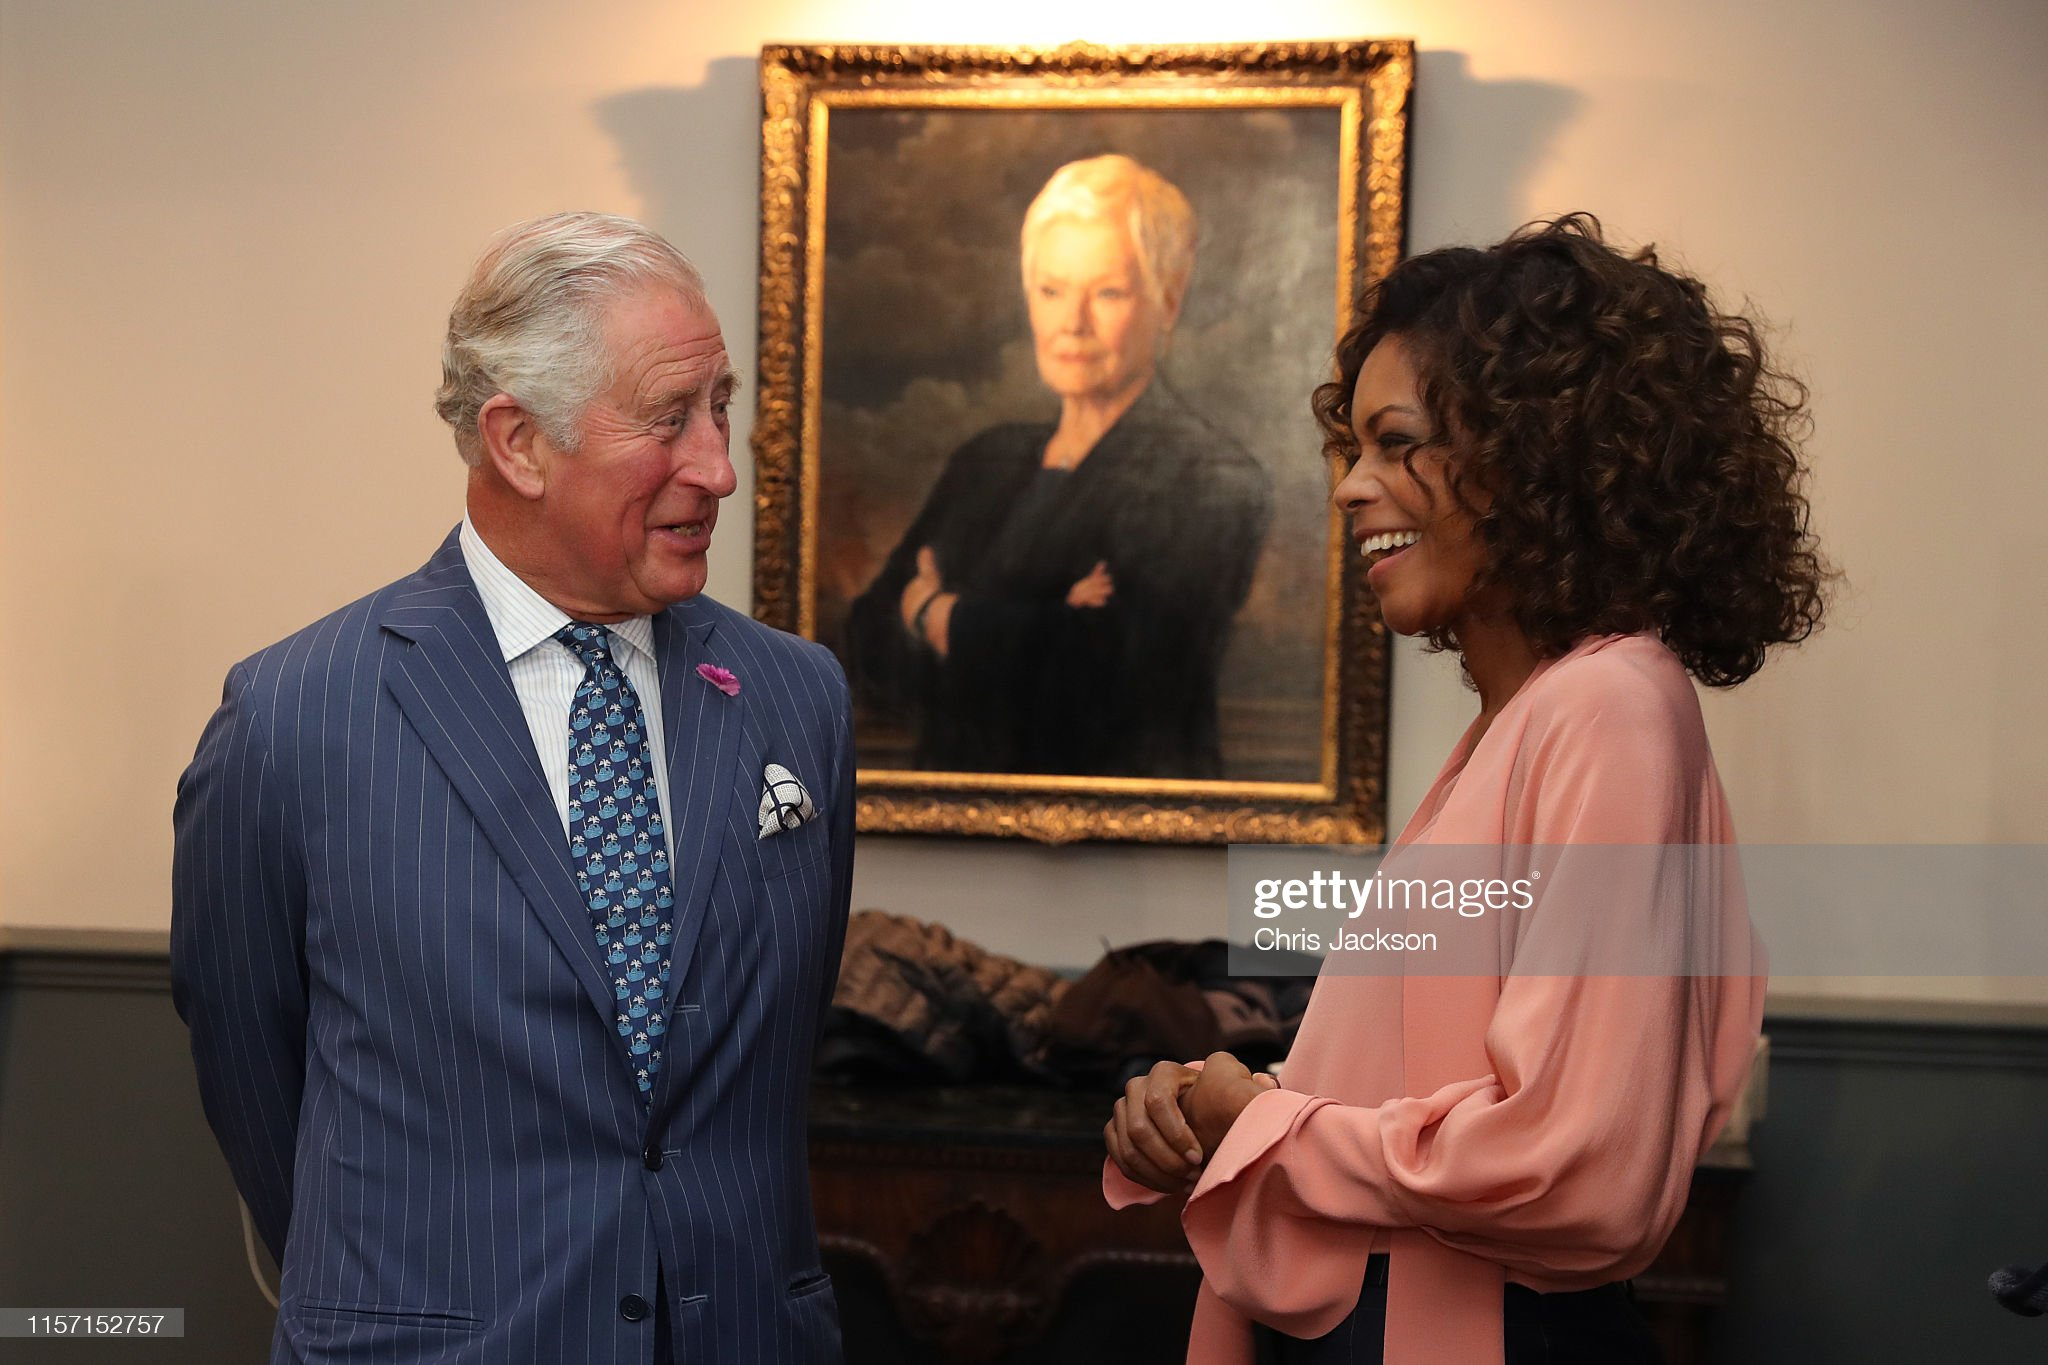 prince-charles-prince-of-wales-with-actress-naomi-harris-during-a-to-picture-id1157152757?s=2048x2048